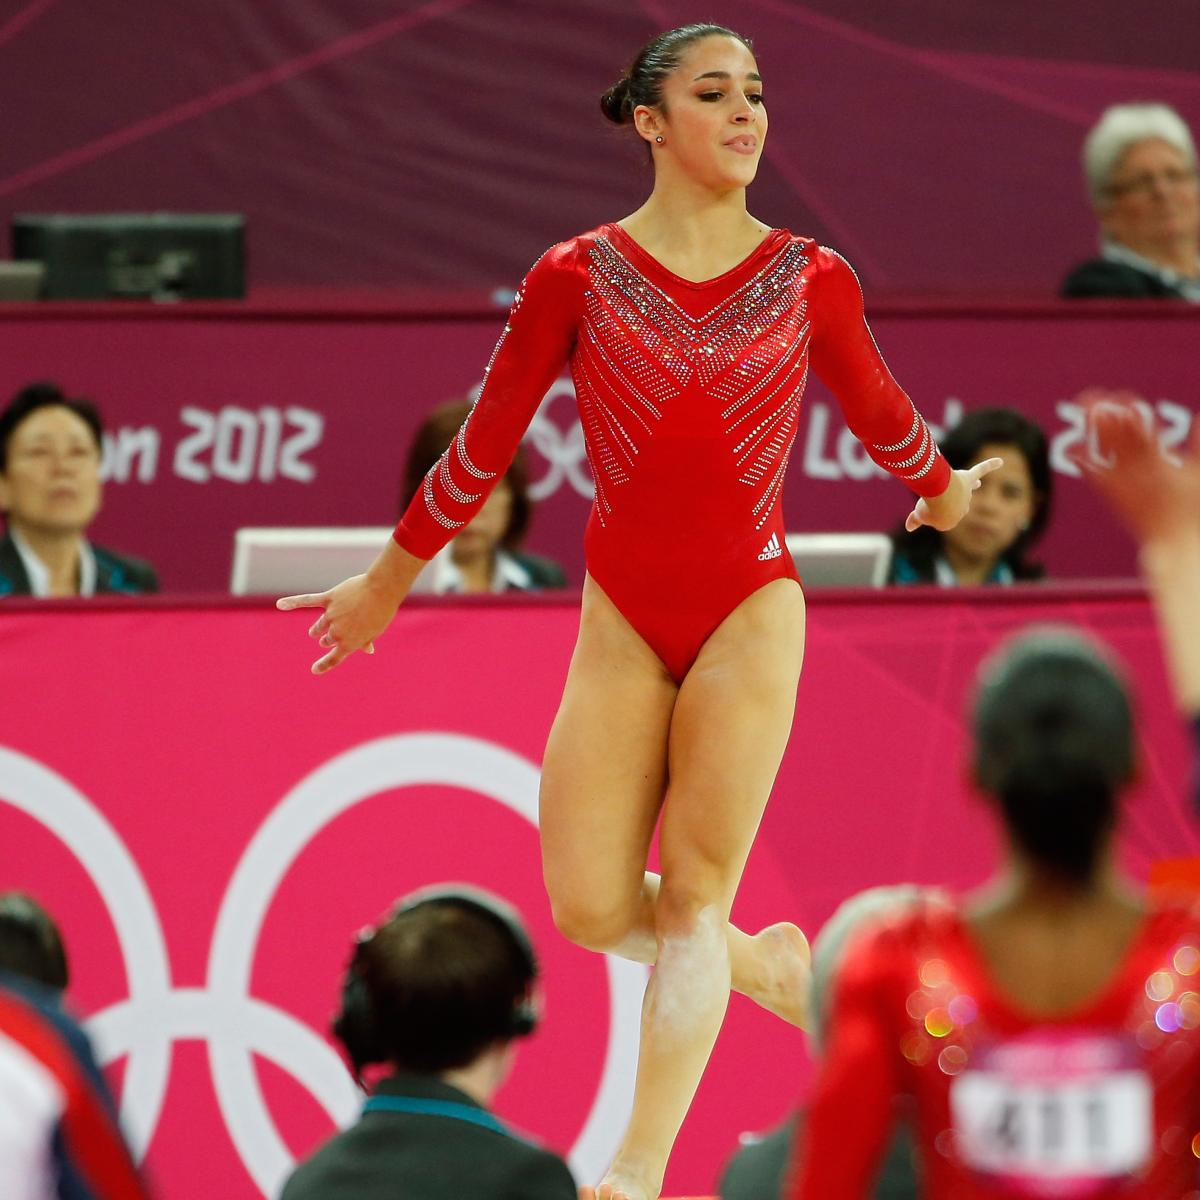 Women's Gymnastics 2012: Aly Raisman And The Top 5 Olympic